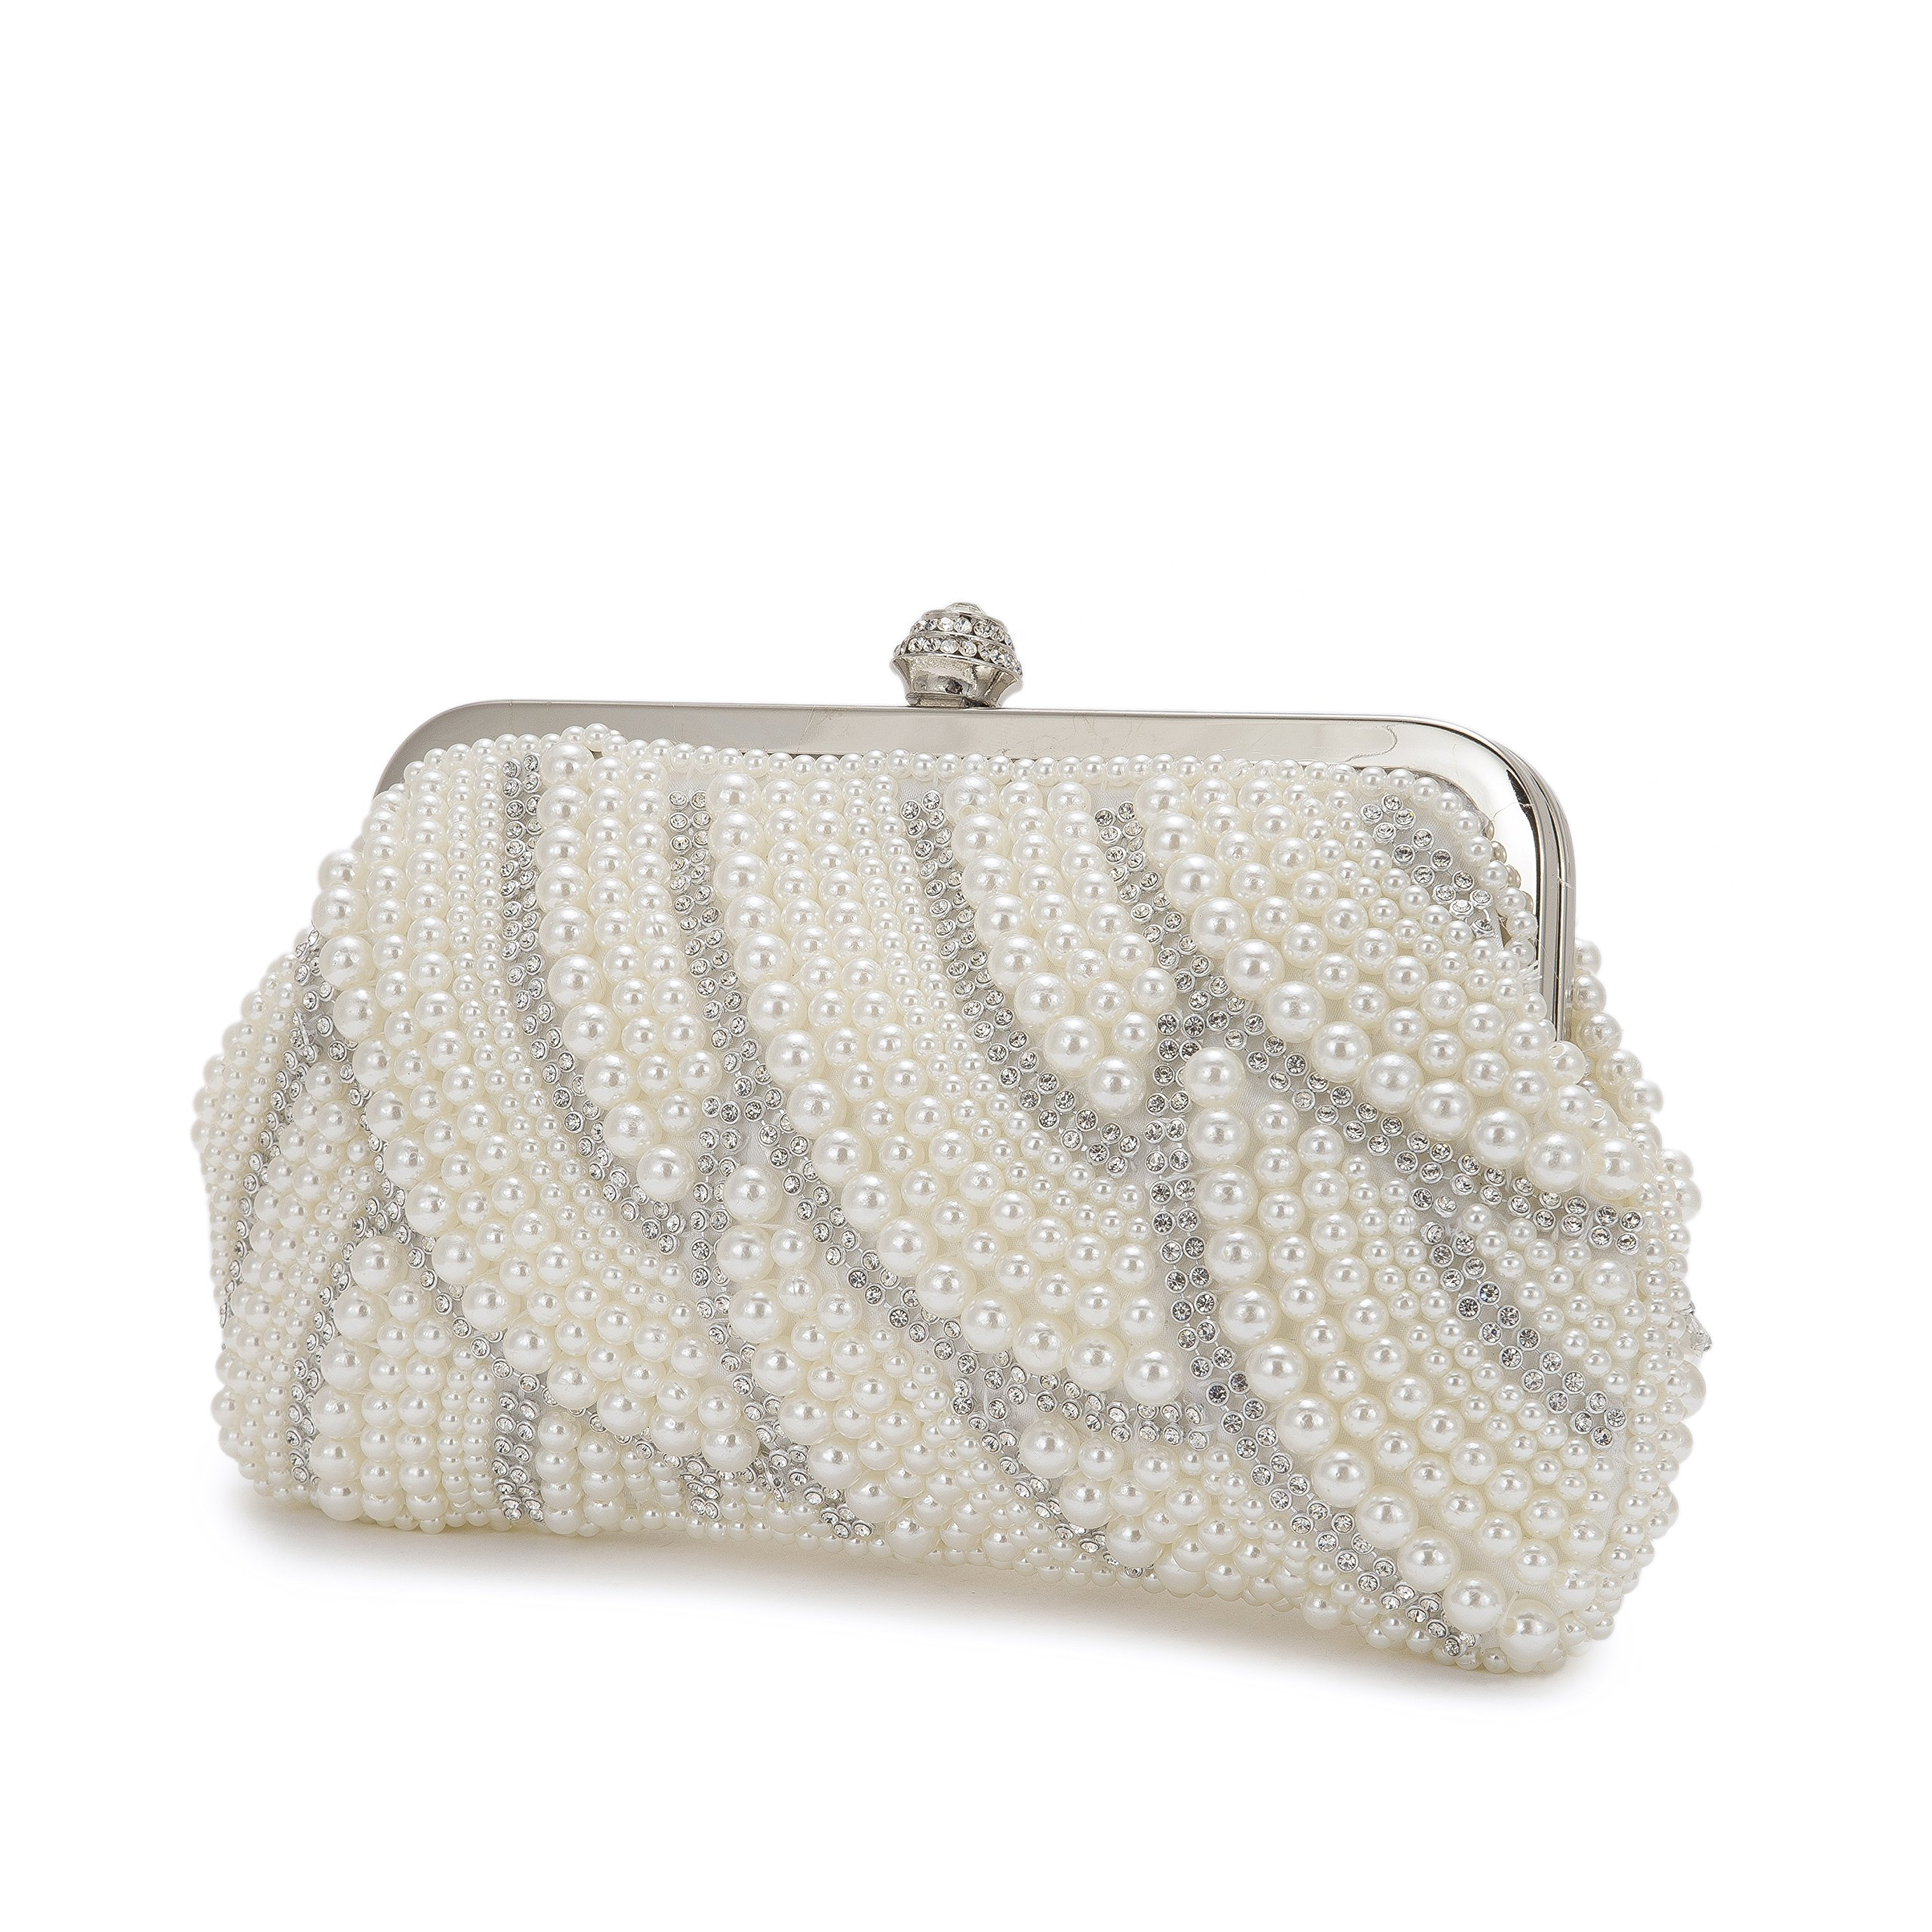 Women's Pearl Beaded Evening Bags Clutch Bags Handmade Wedding Bags for Wedding Party Chain Bag